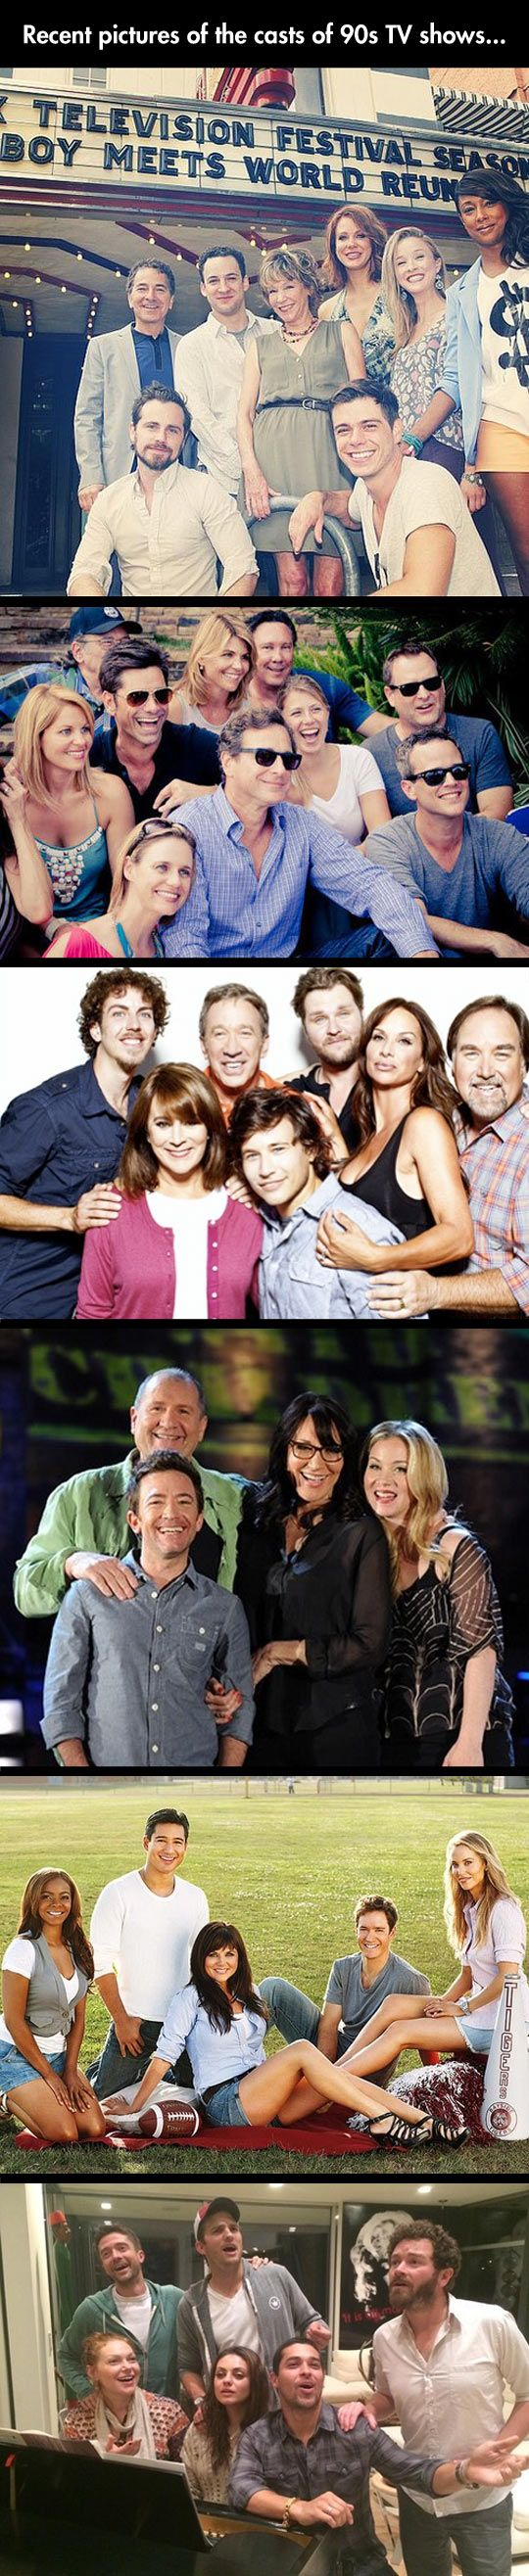 Recent pics of the cast of 90's tv shows. I LOVE THIS.